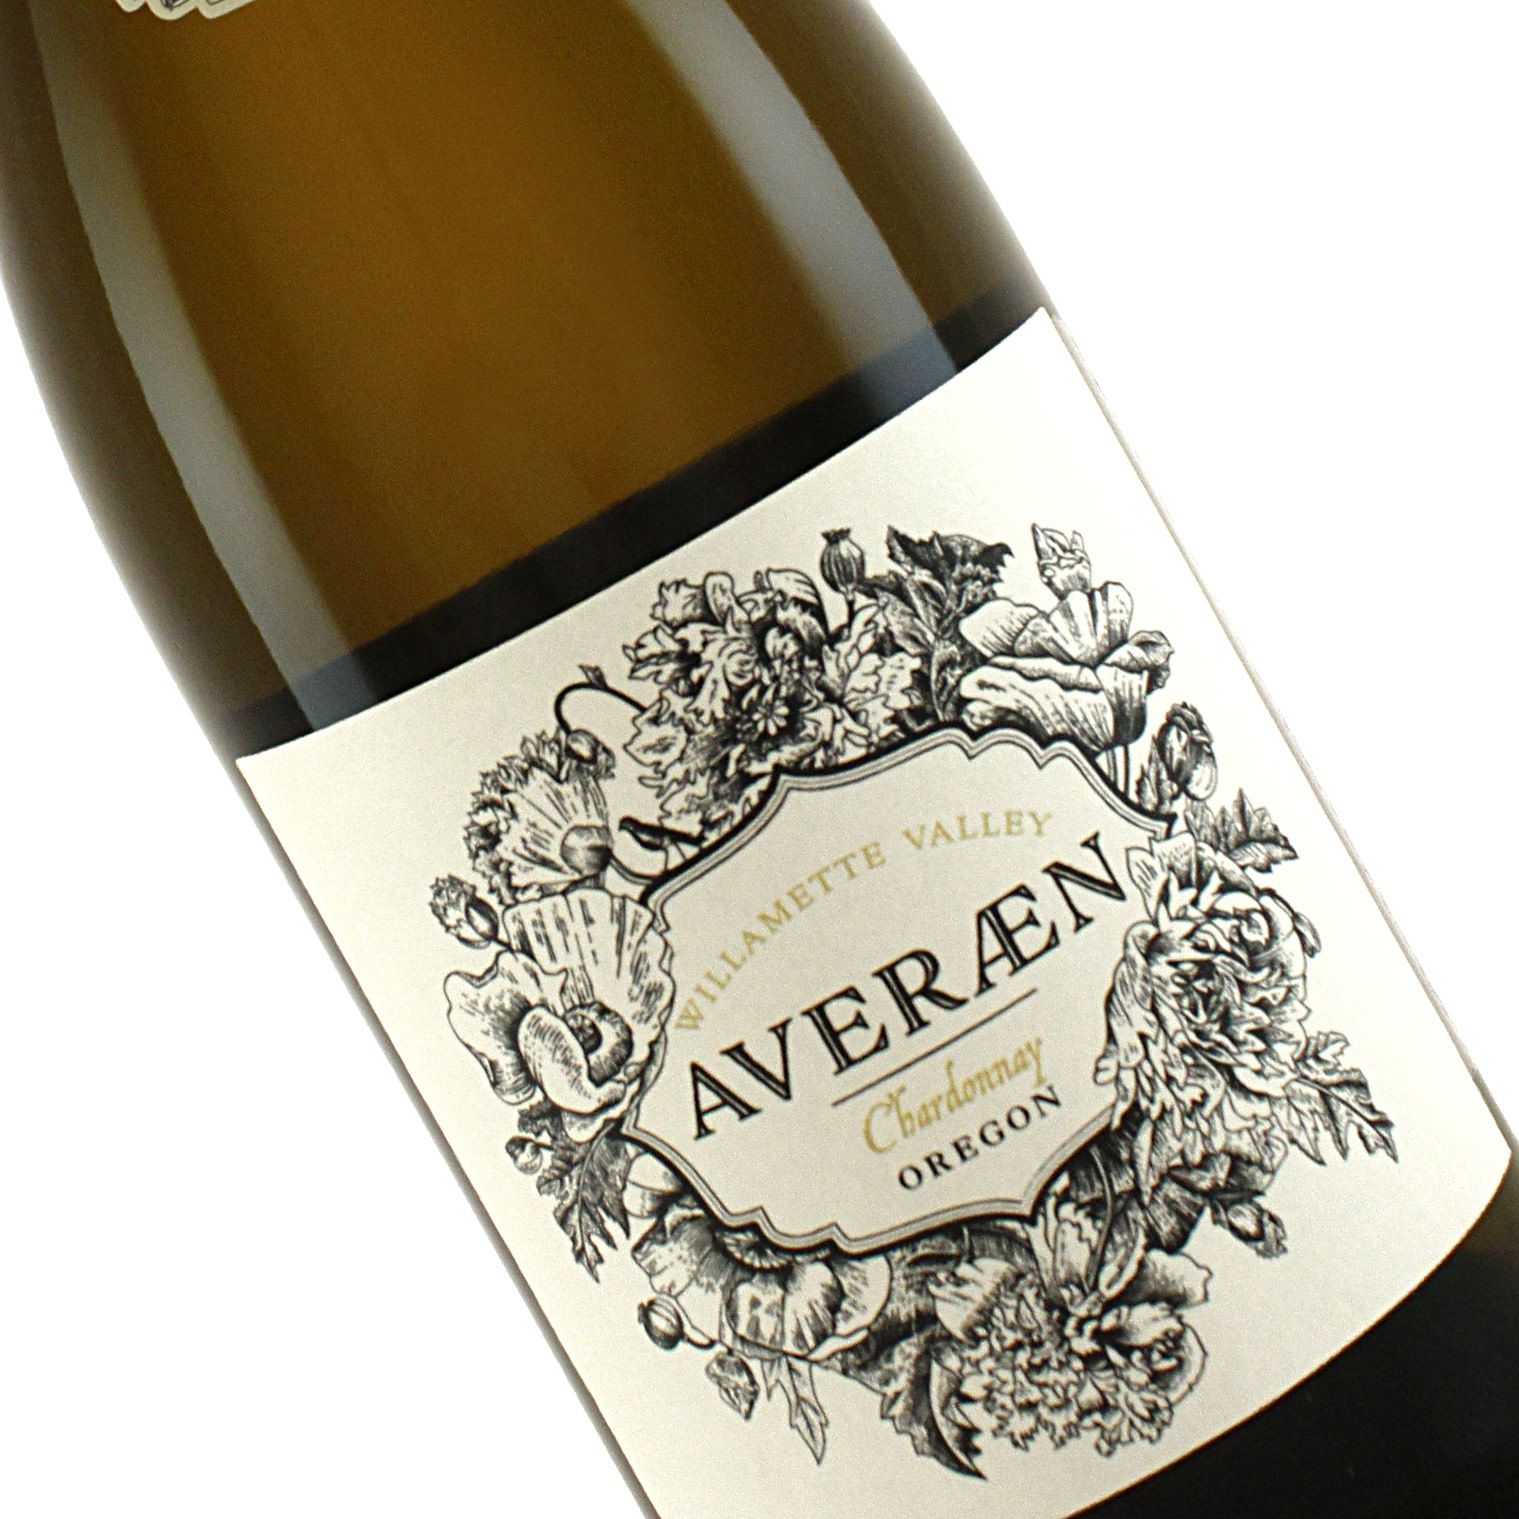 Averaen 2018 Chardonnay, Willamette Valley, Oregon